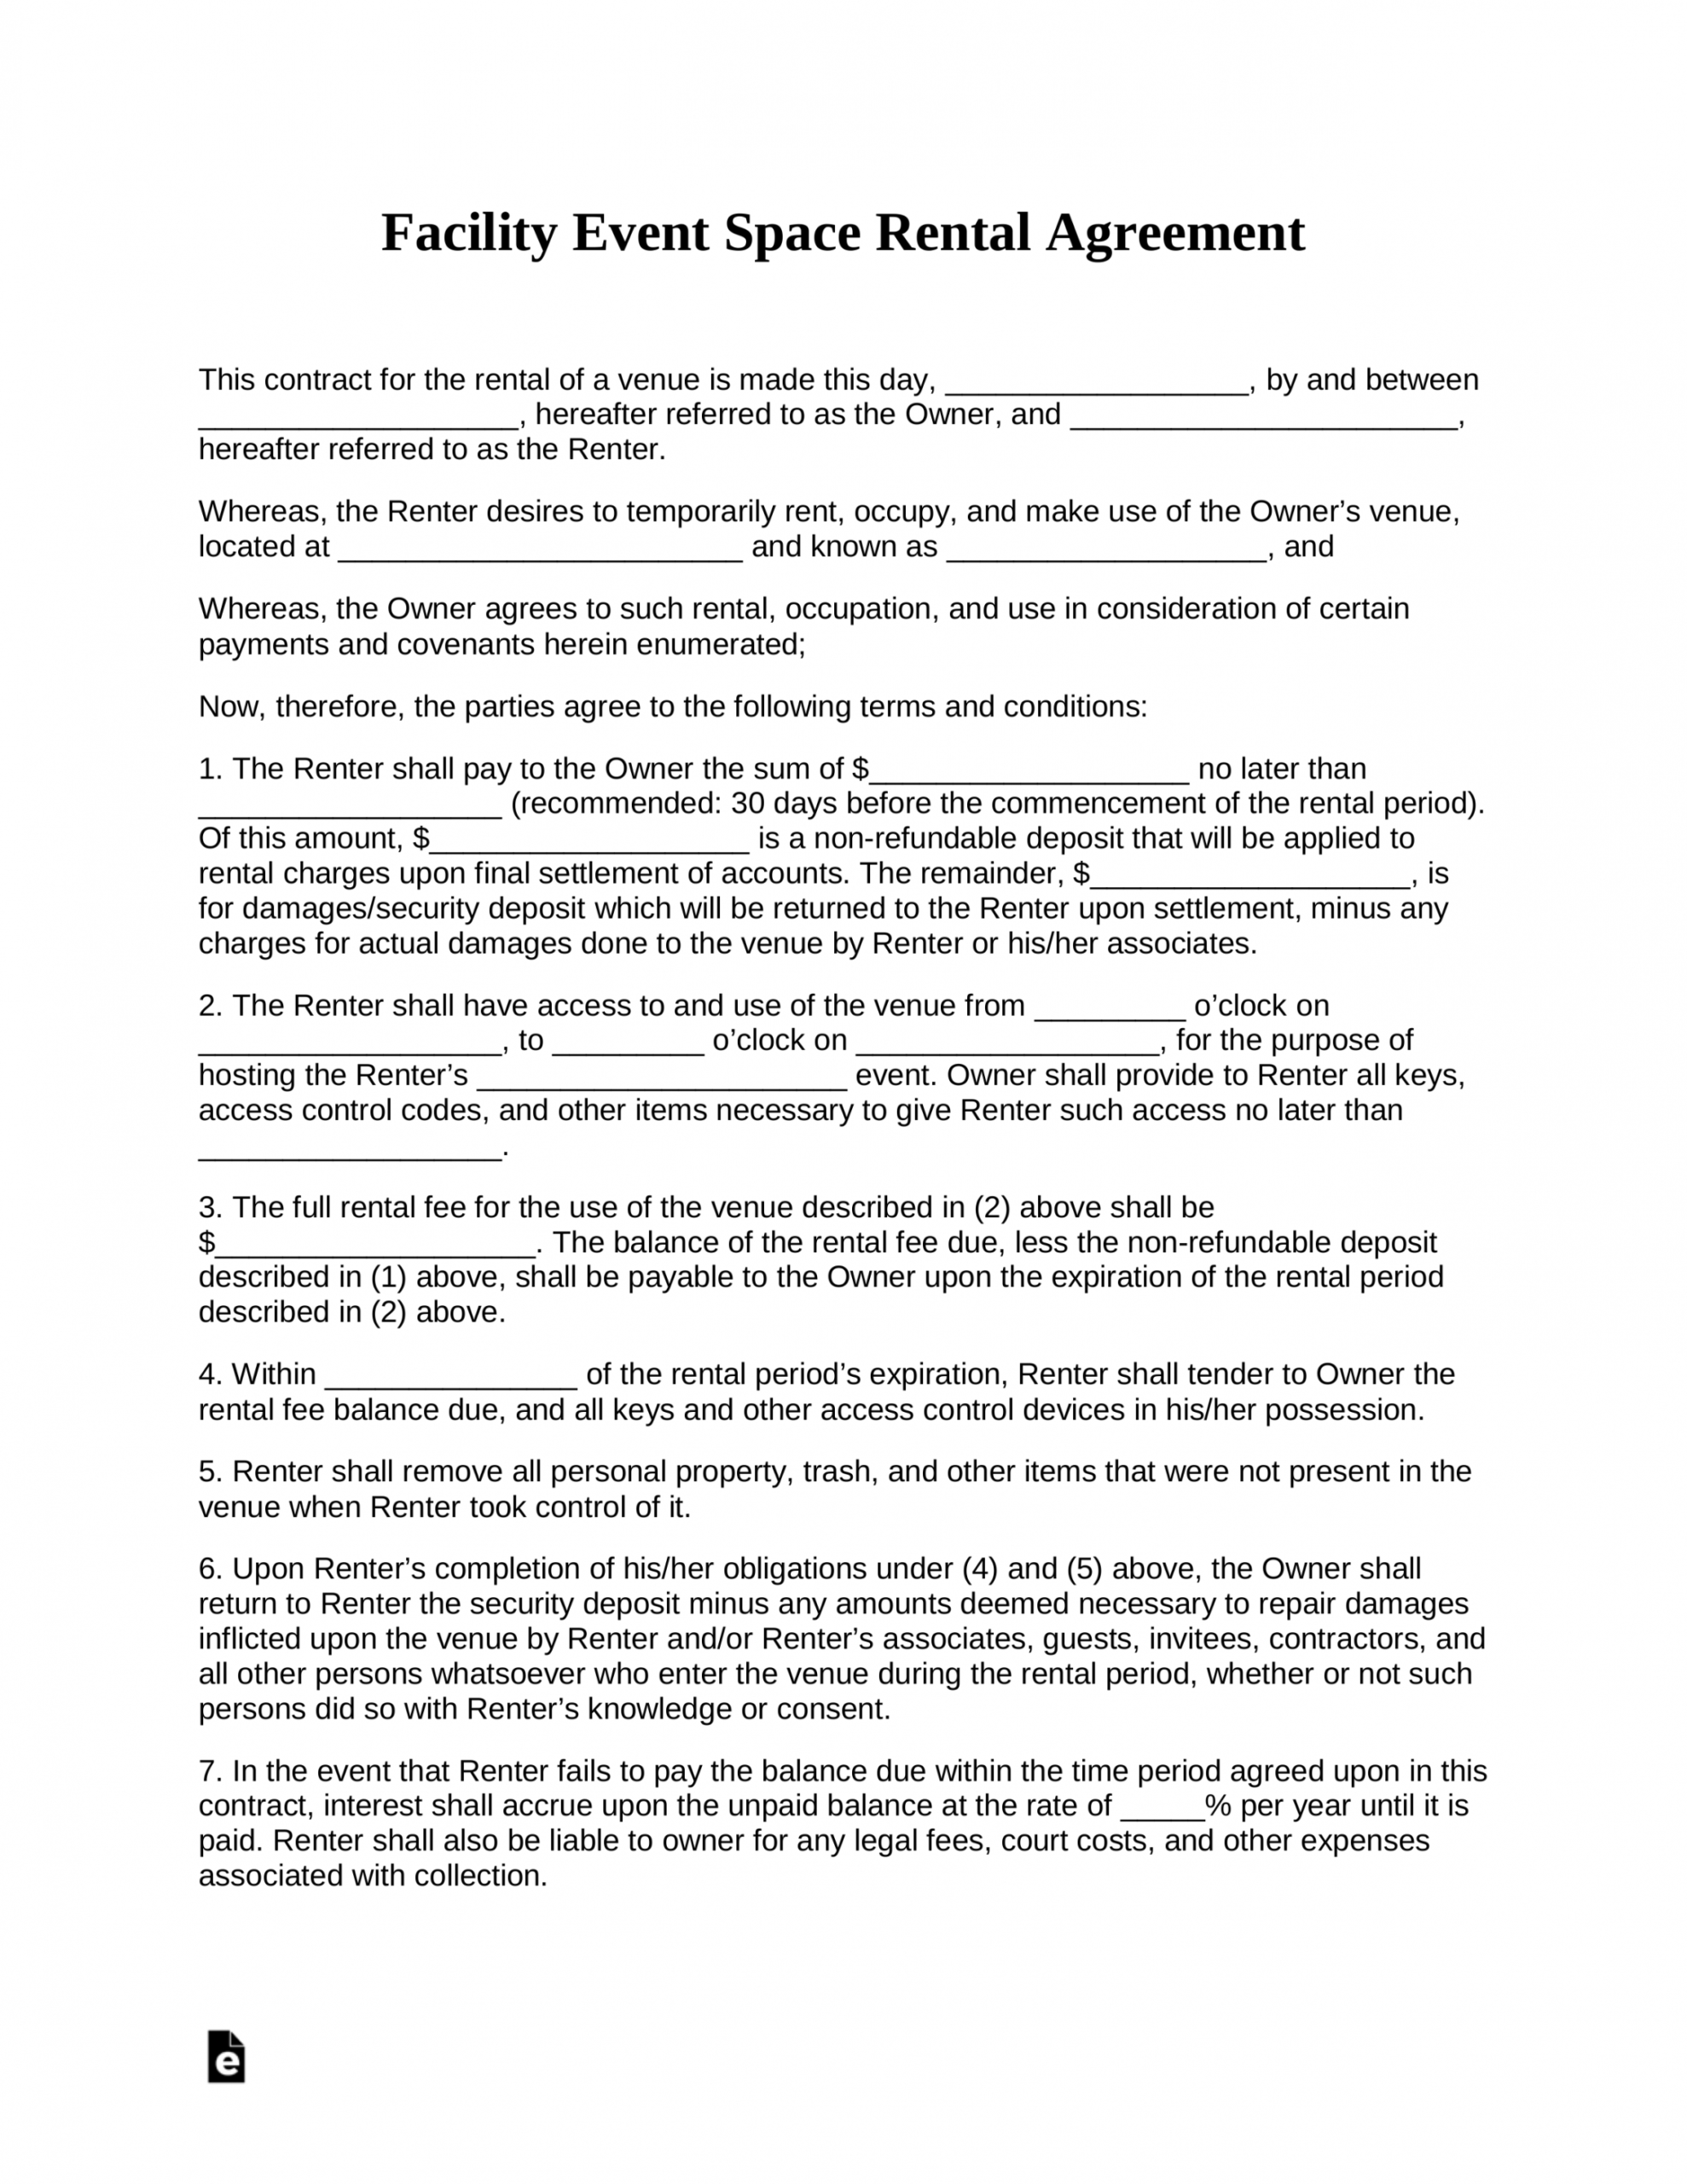 Get Our Example Of Facilities Use Agreement Template Rental Agreement Templates Event Space Rental Contract Template